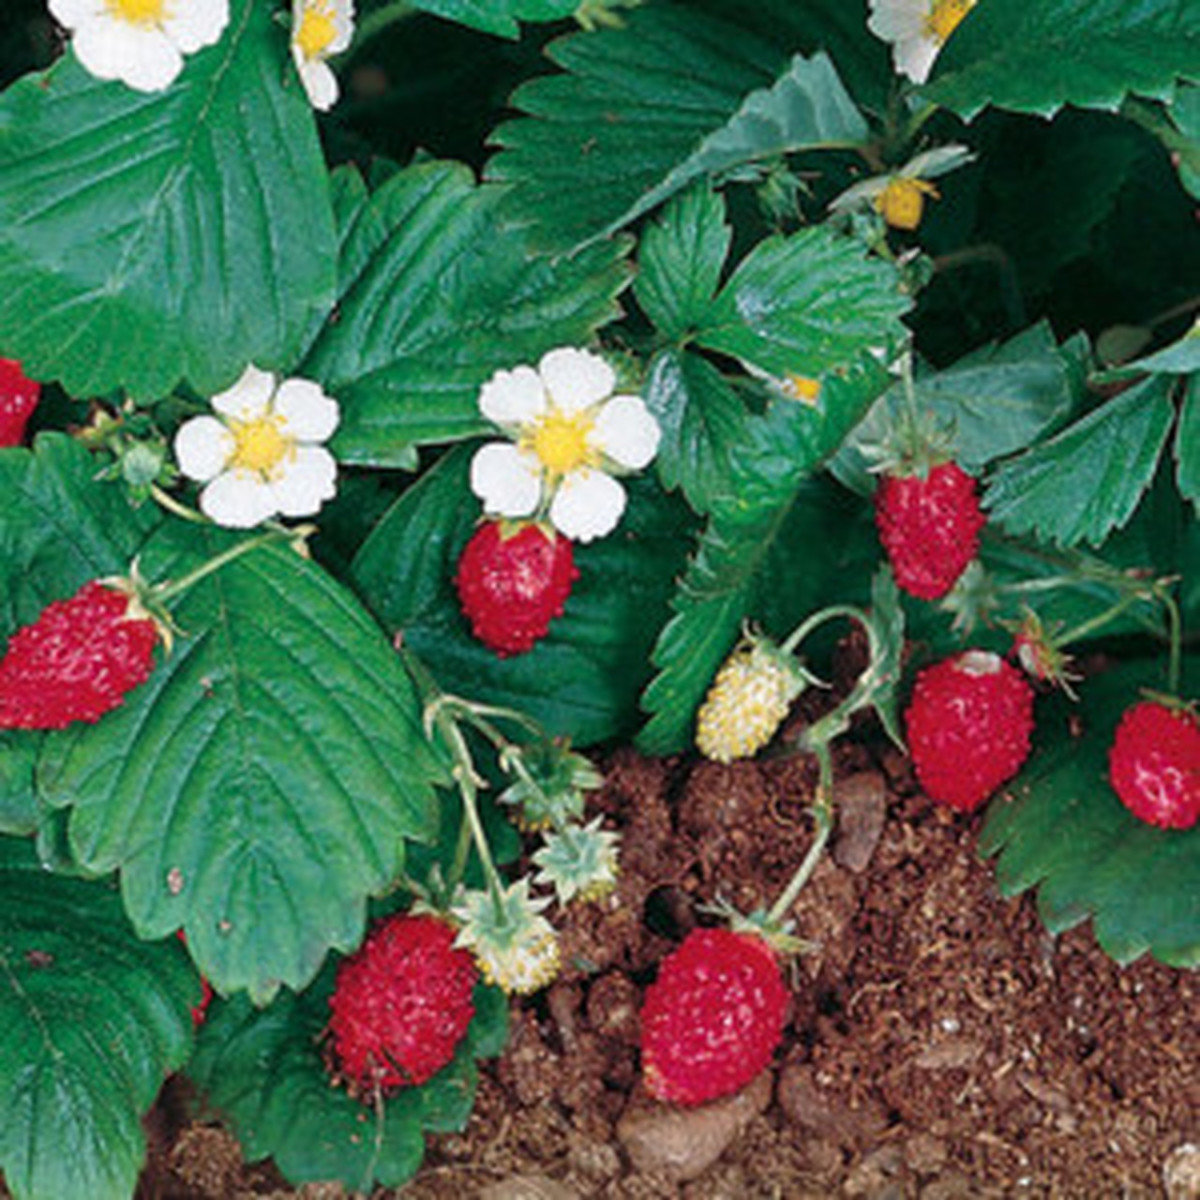 This is the Alpine Strawberry variety (Fragaria Vesca).